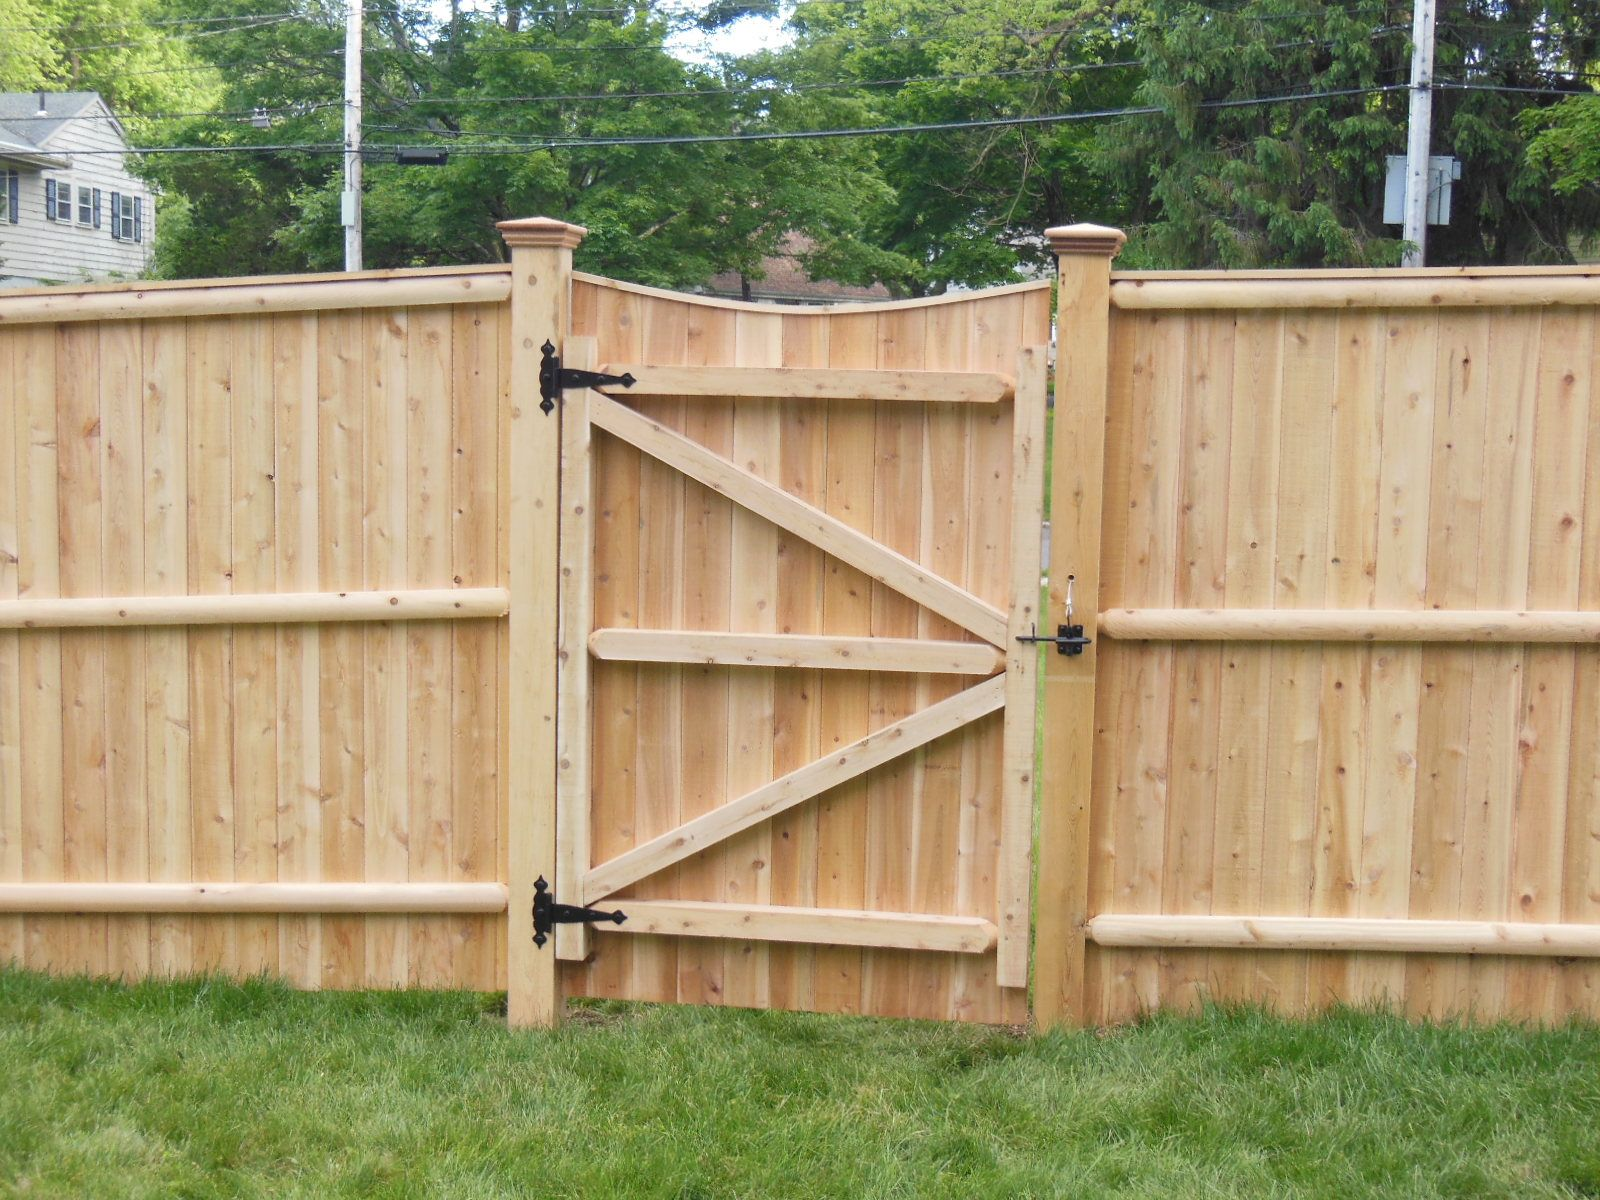 fences wood fence gates wooden fence fencing fence ideas lattice fence